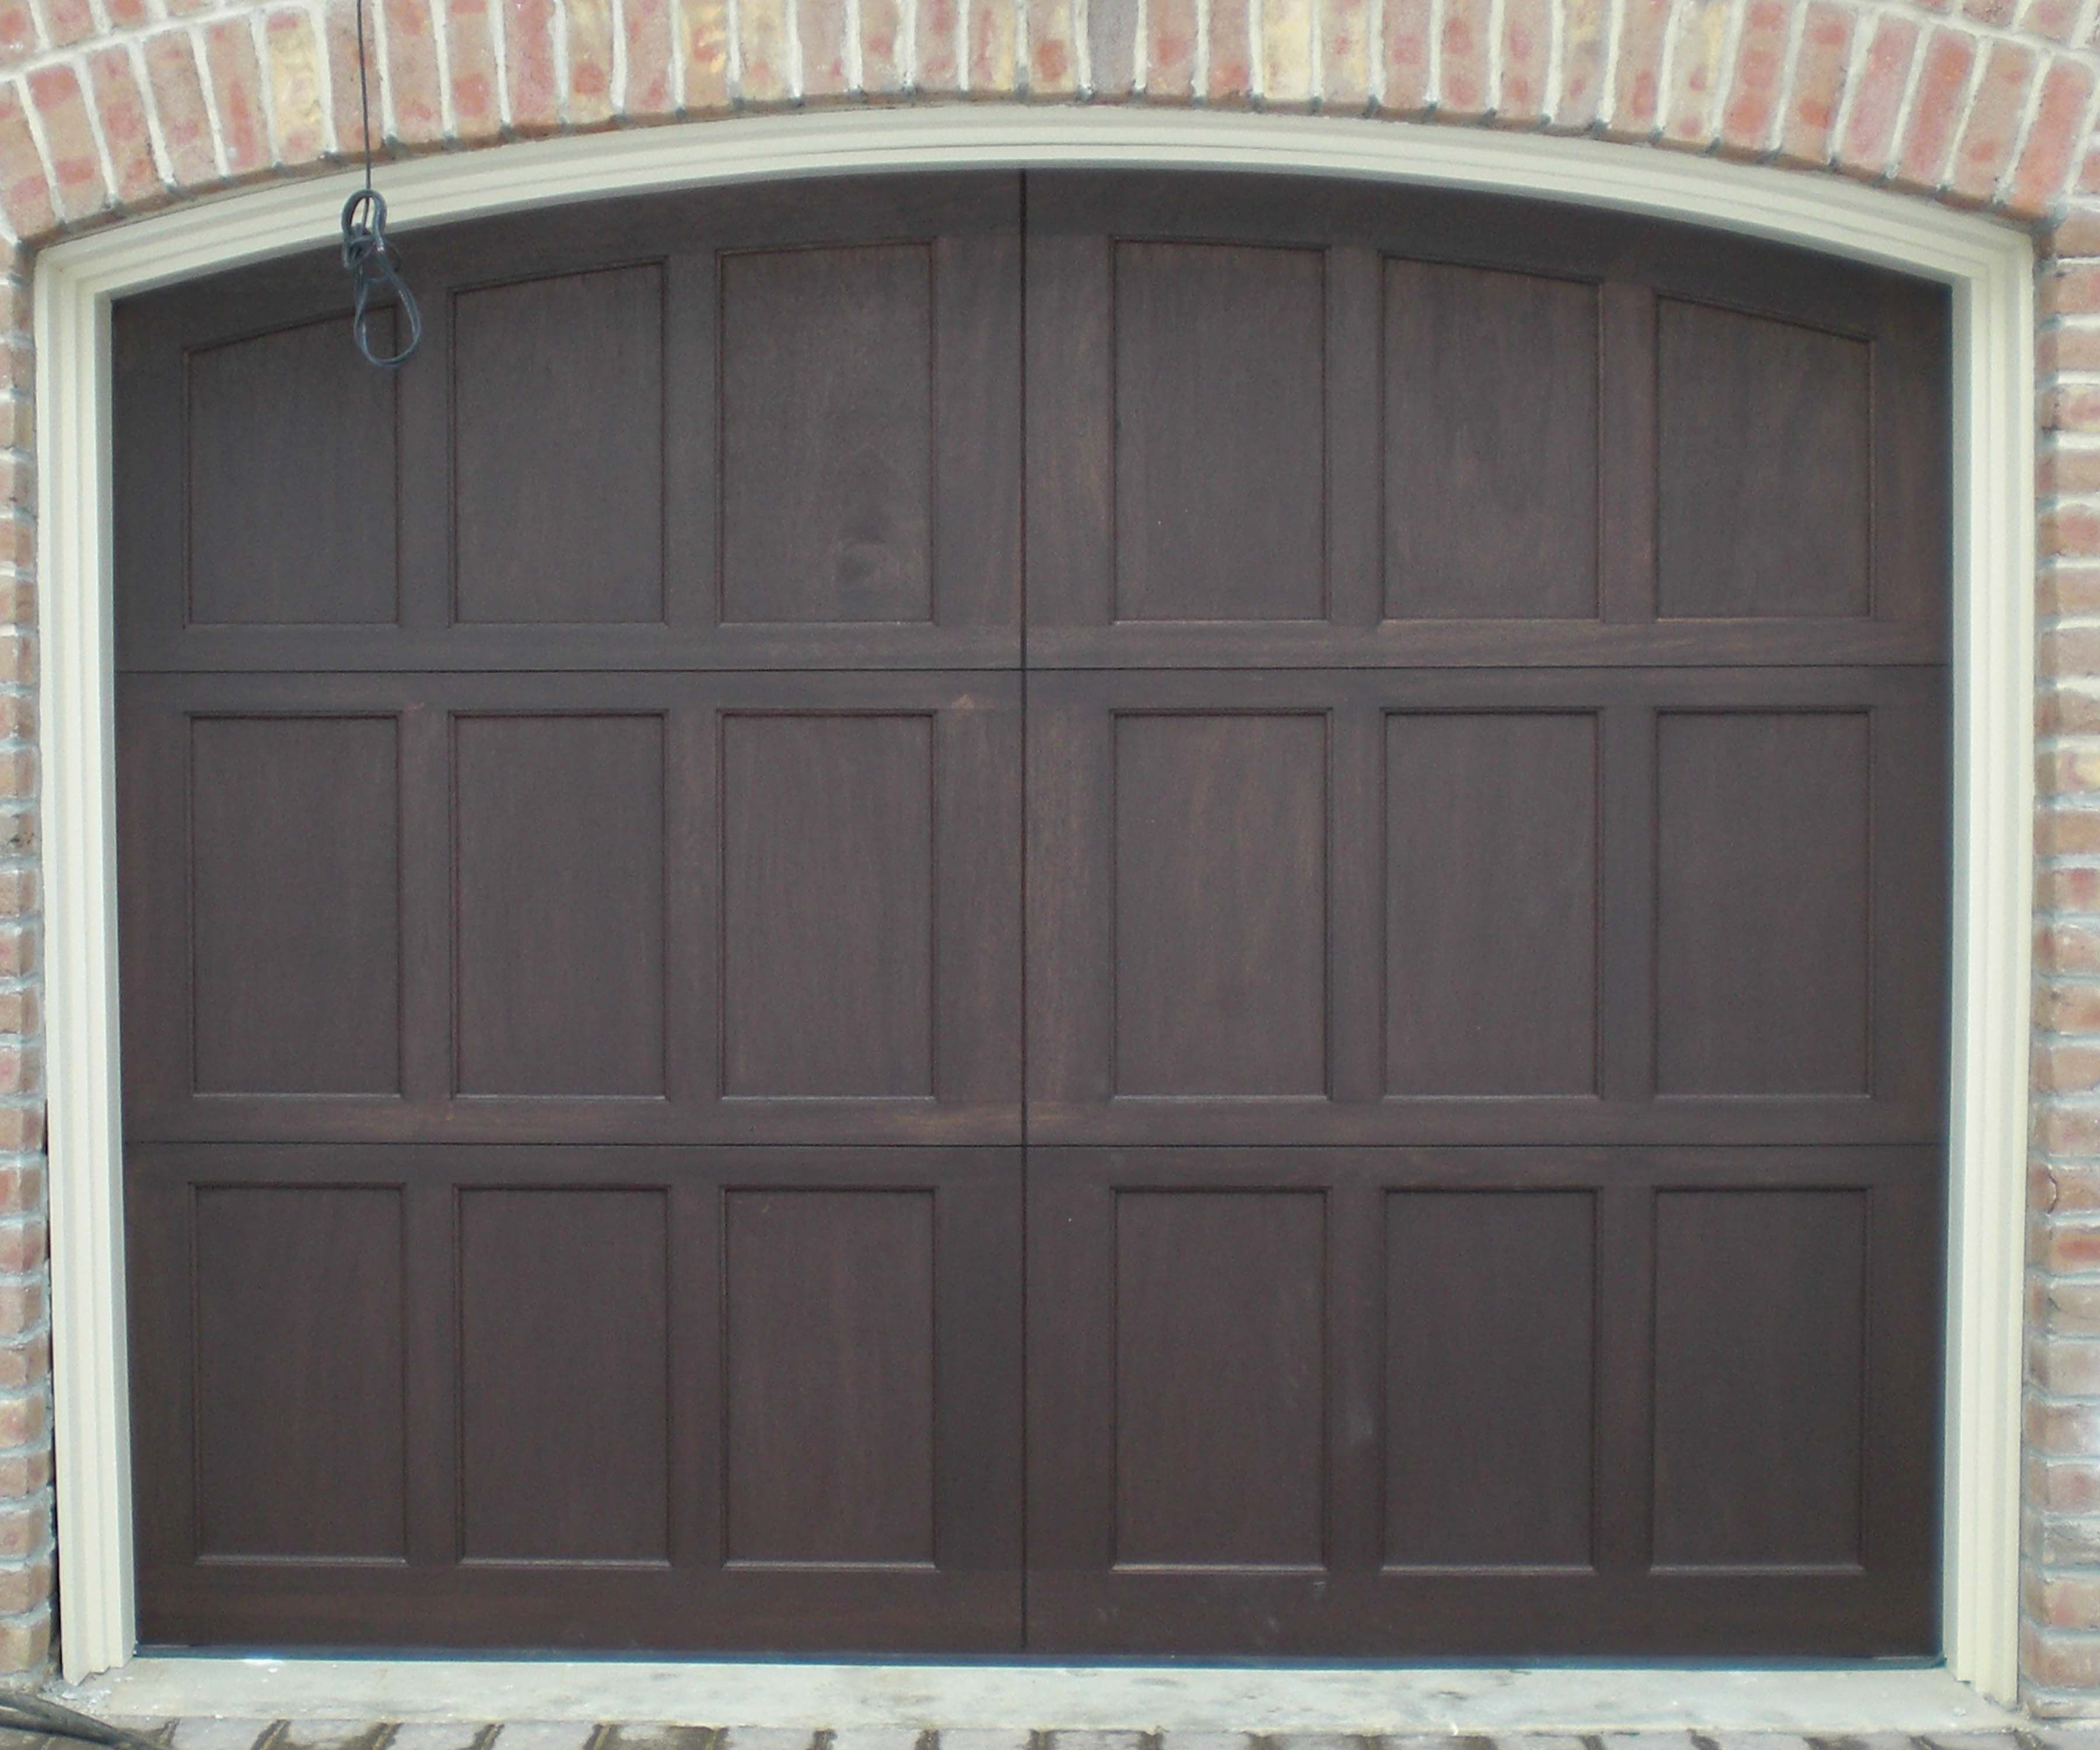 Storefront Gate Services In Bronx Repair All Overhead Garage Doors